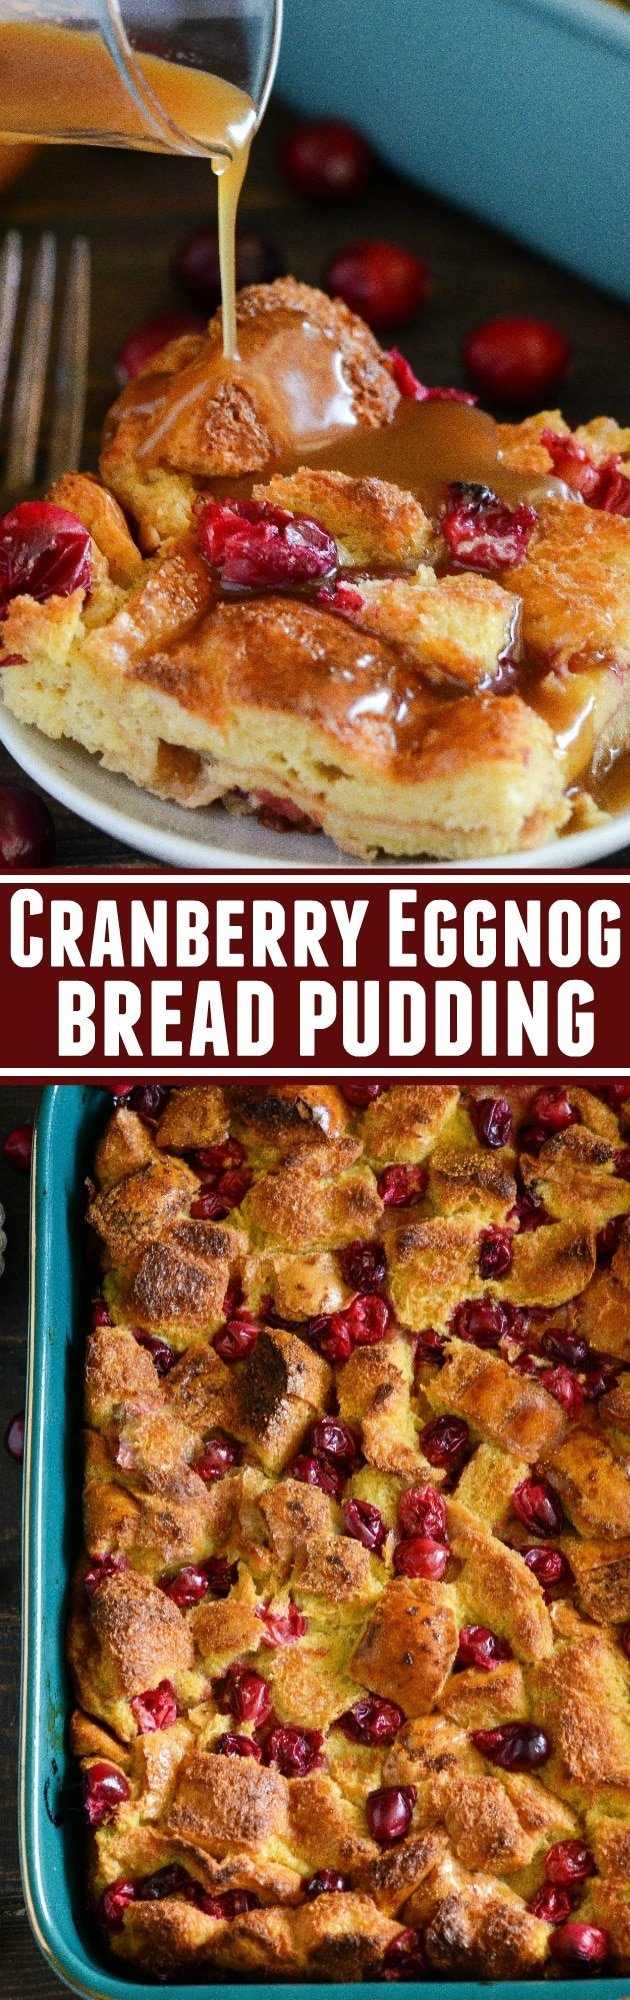 recipe: eggnog and cranberry salad [39]